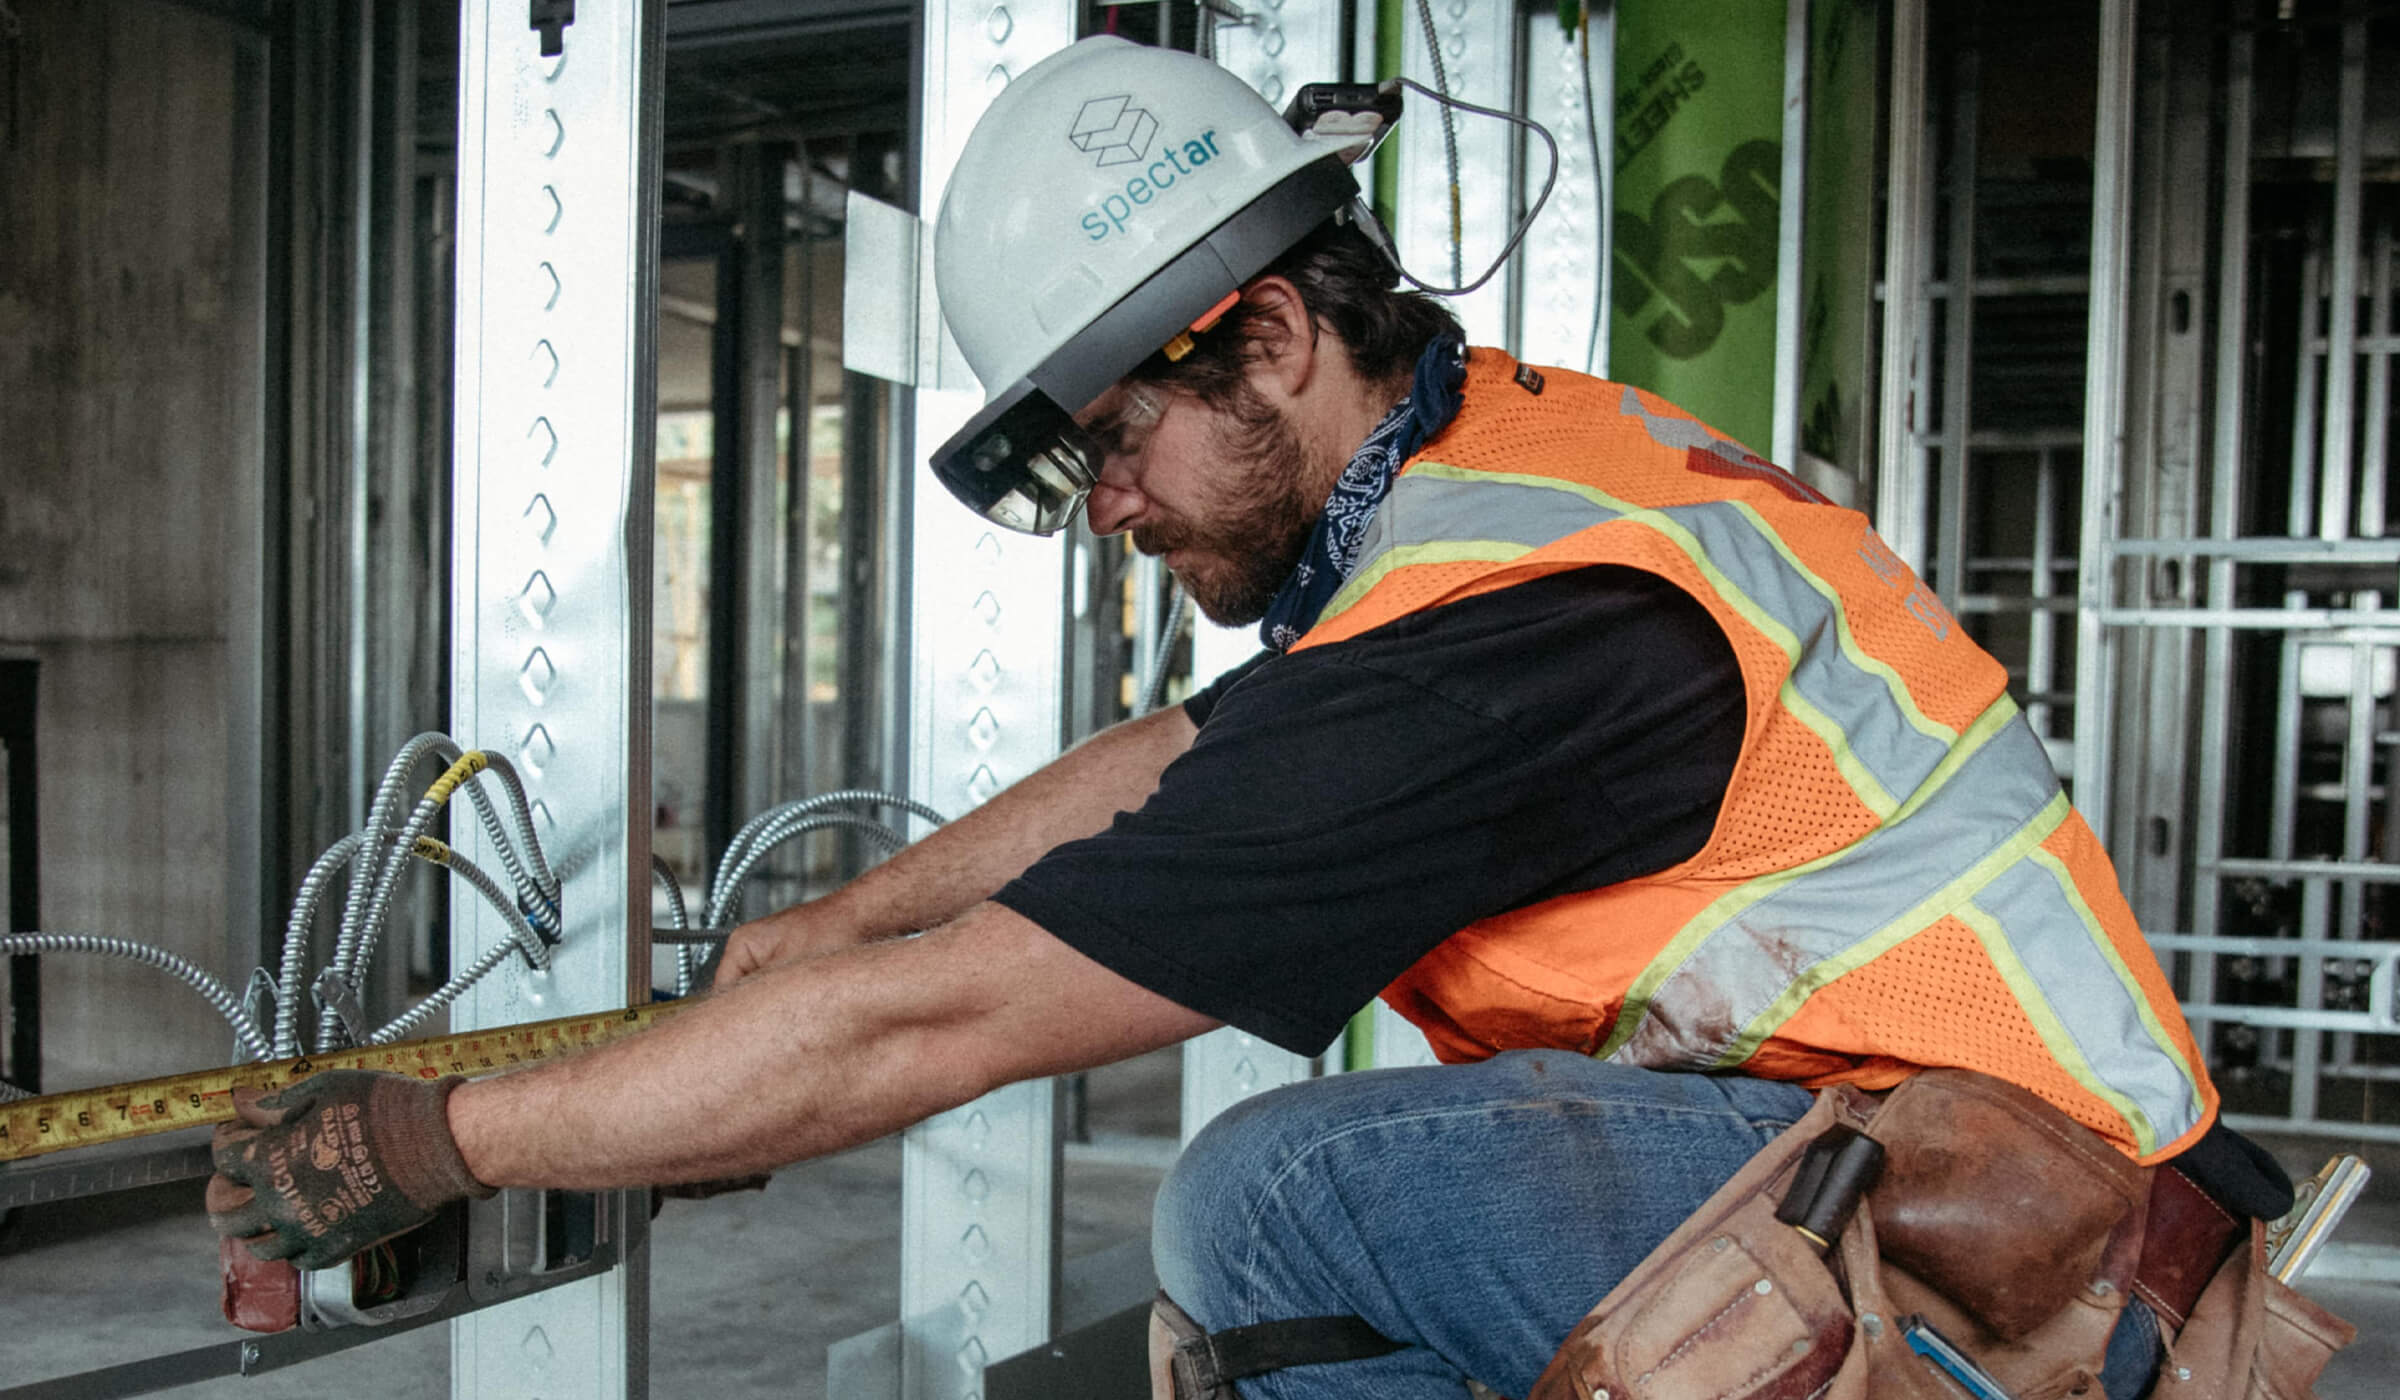 Surpassing the productivity frontier in construction with AR